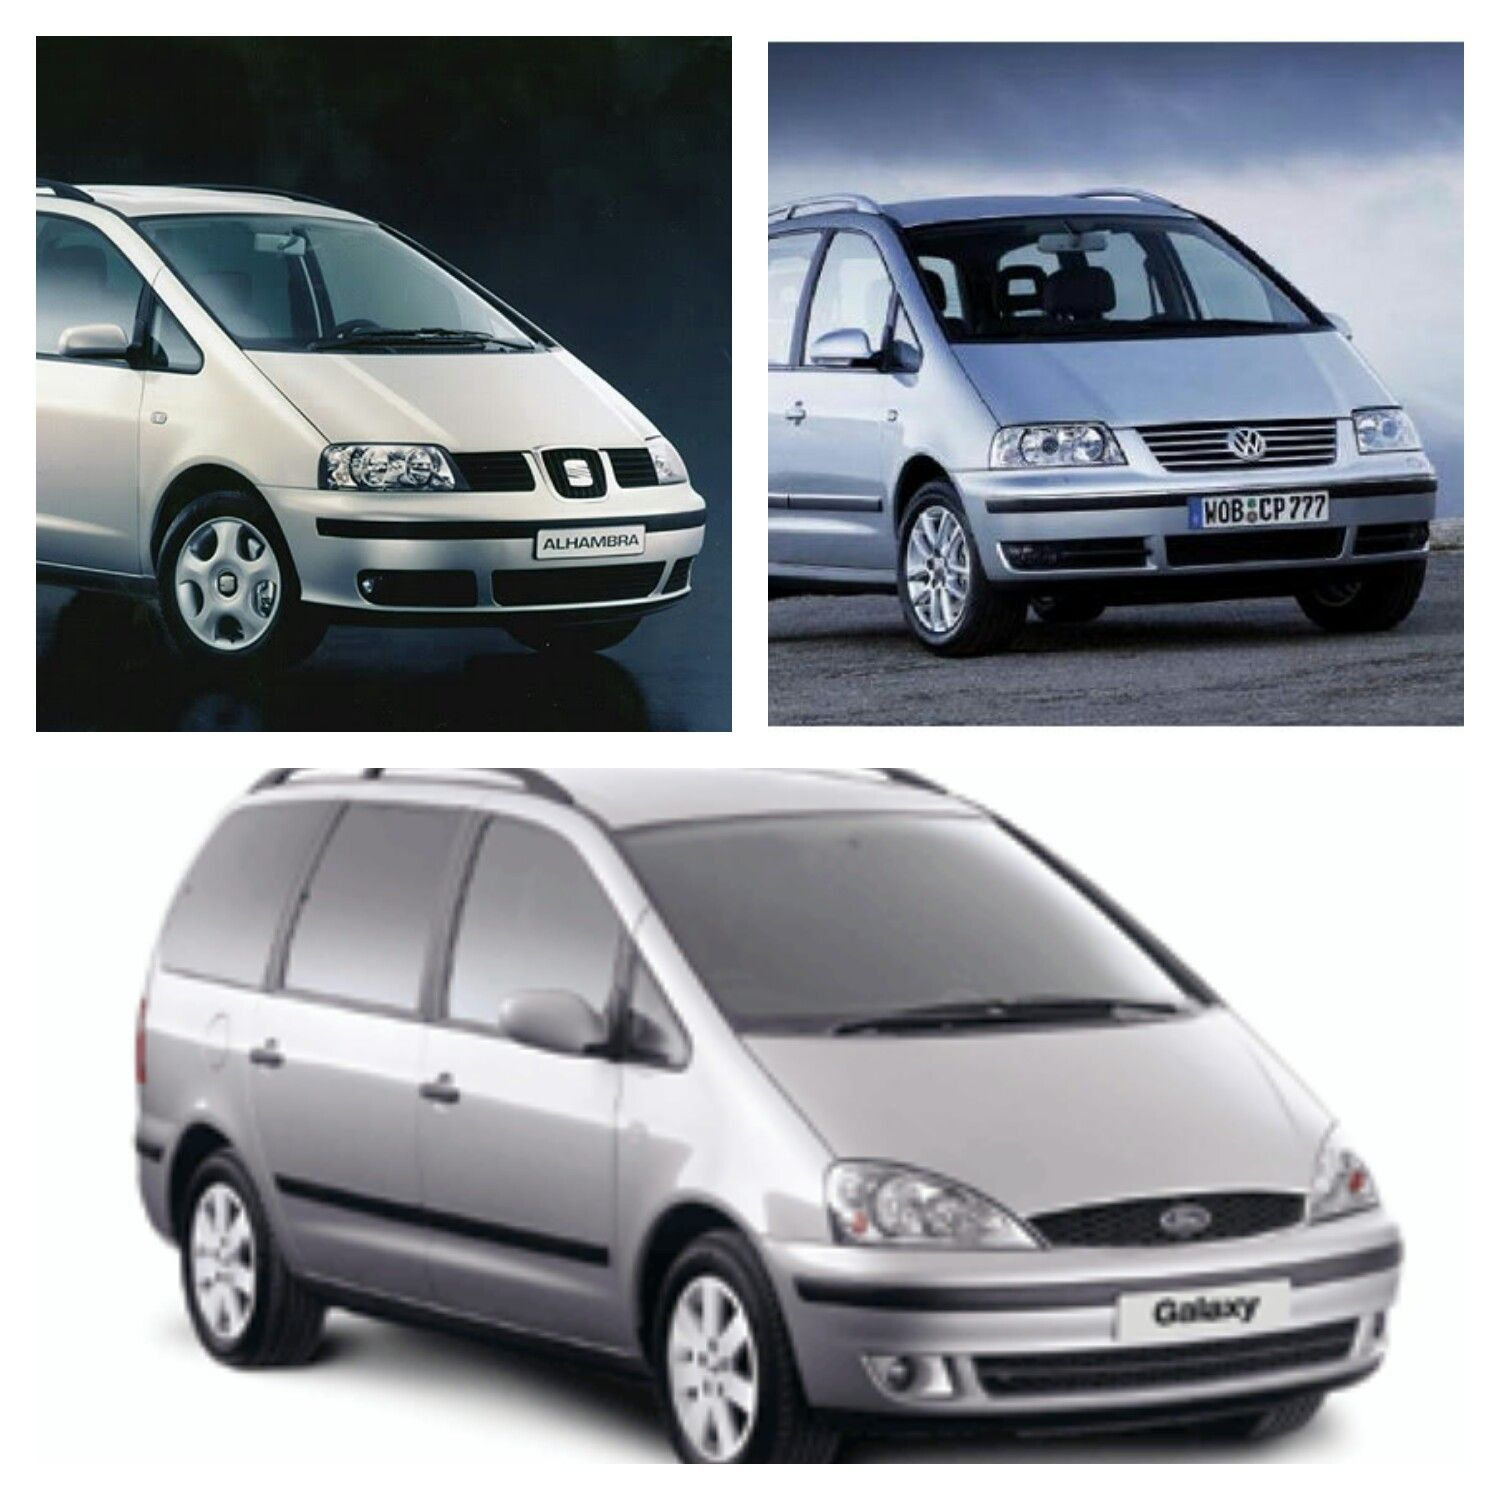 Seat Alhambra Top Left Volkswagen Sharan Top Right Ford